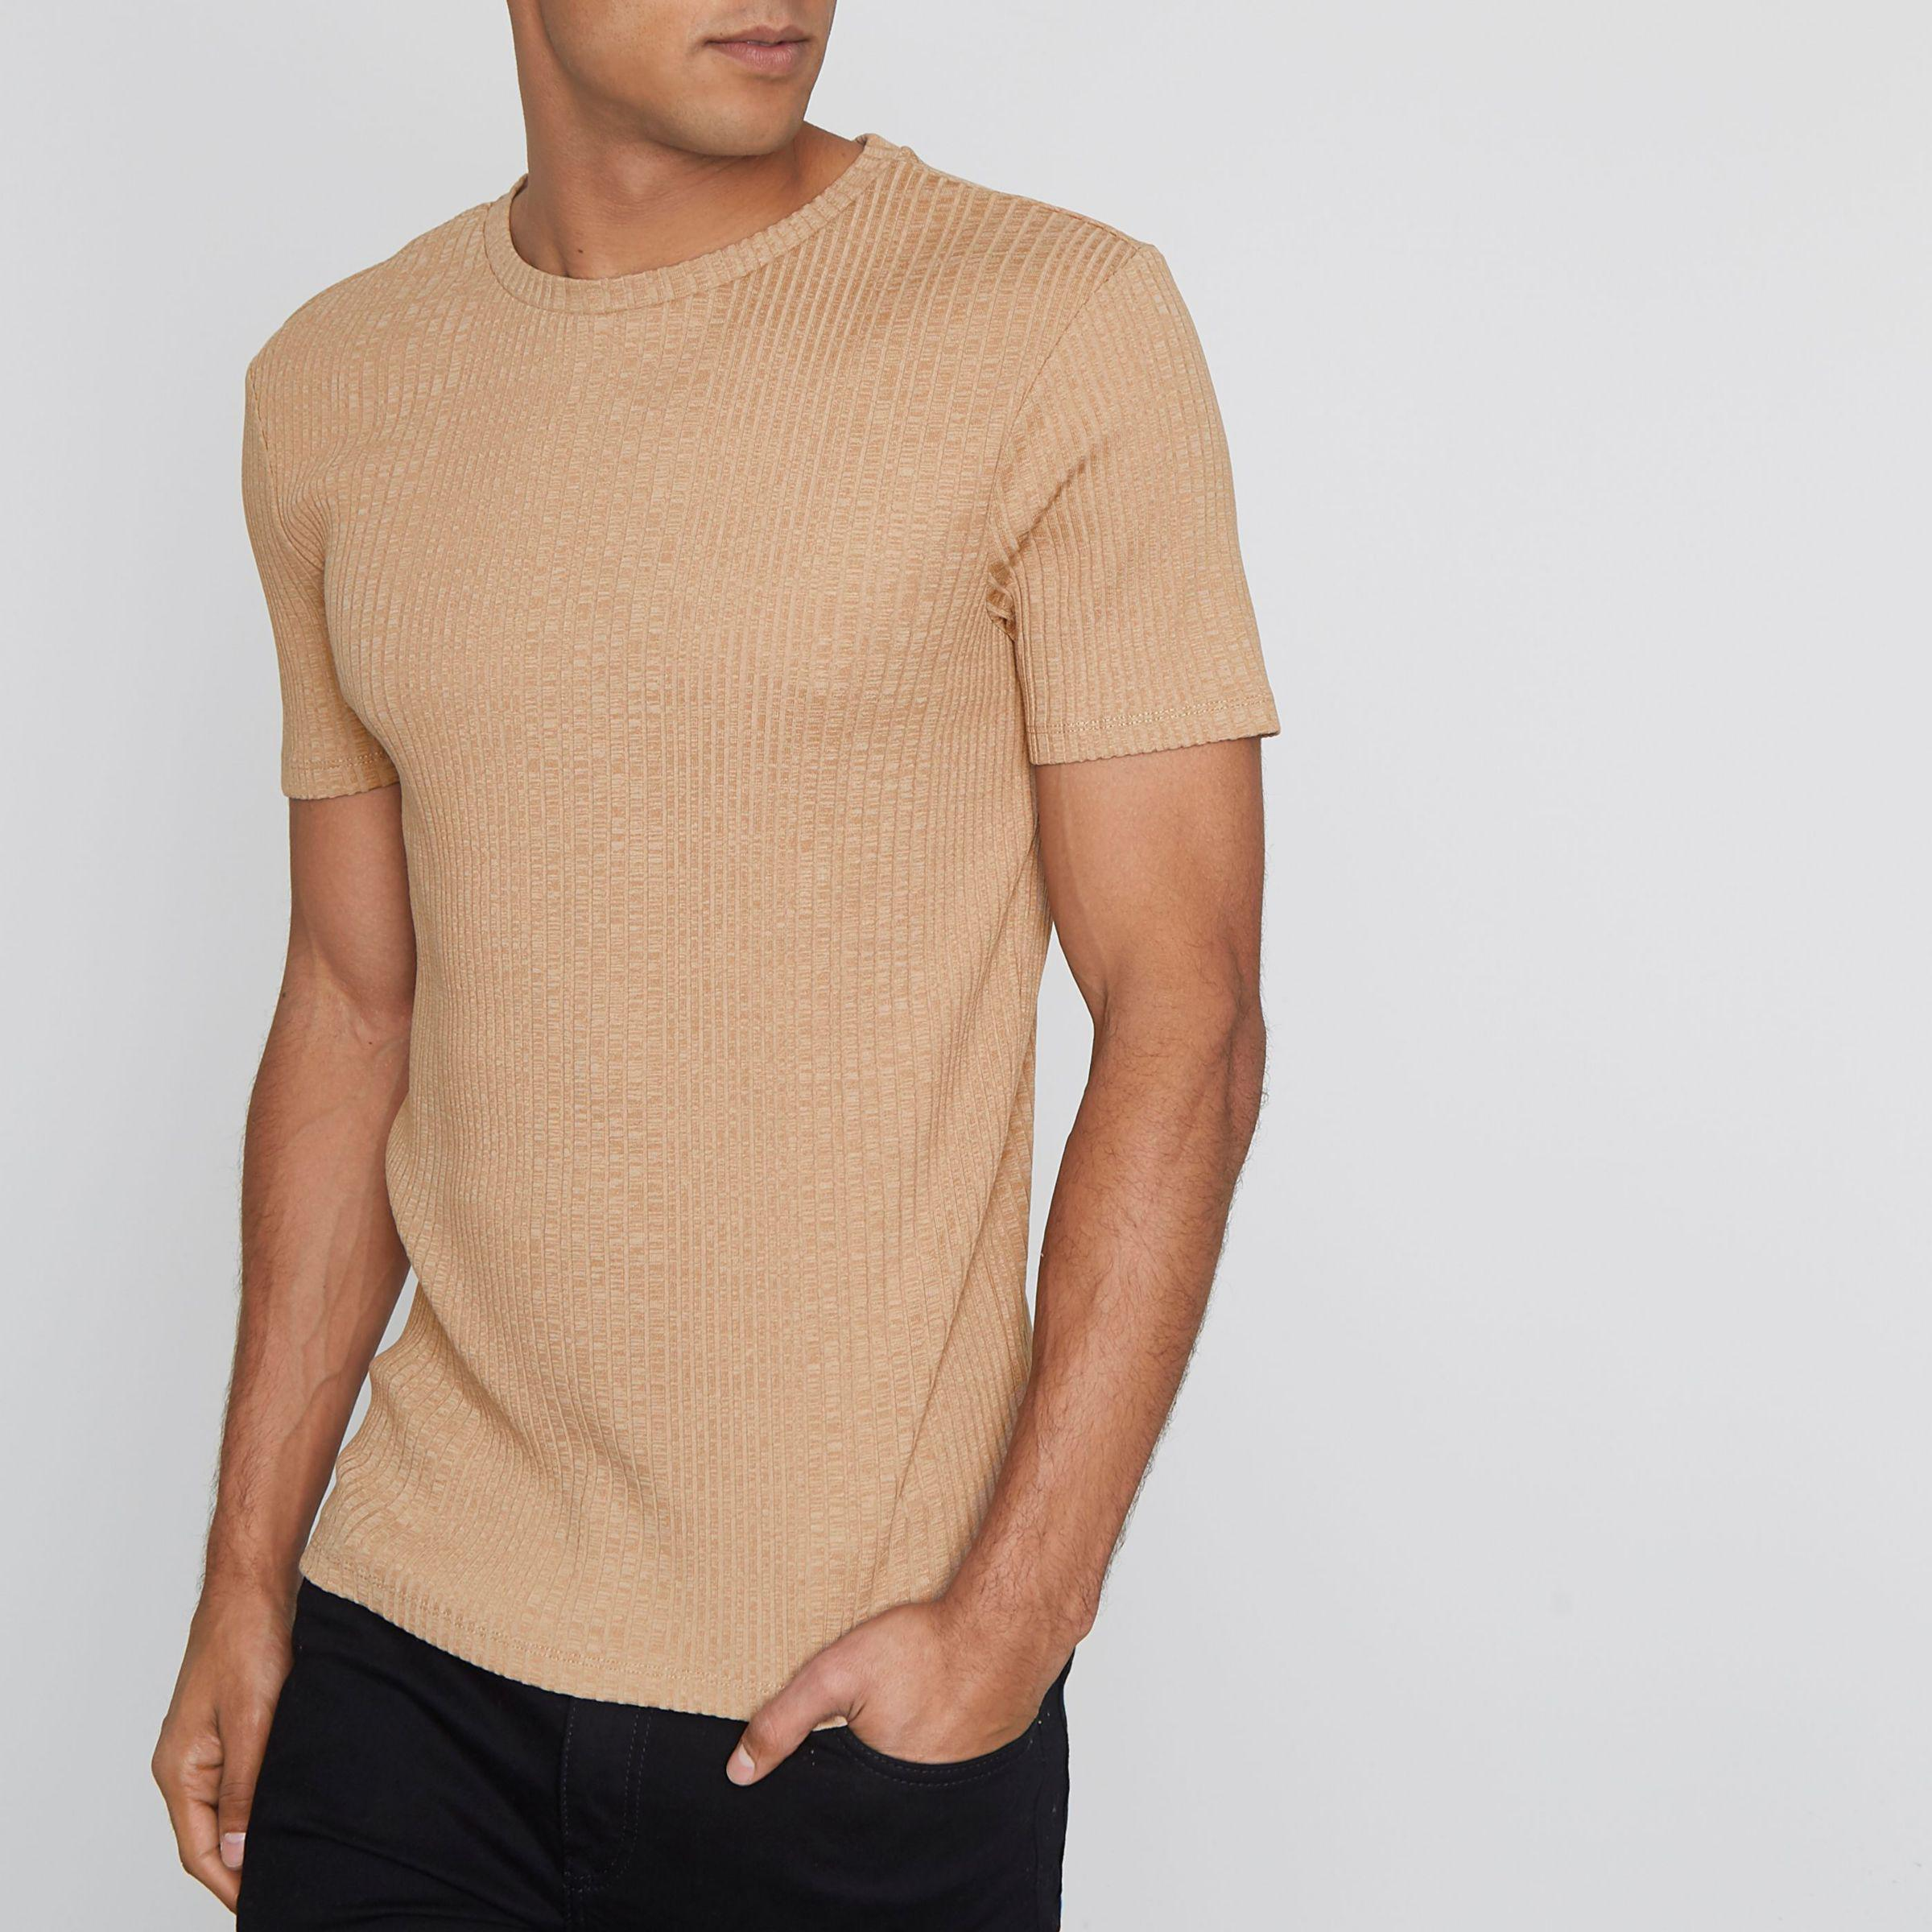 68a01dbdc Lyst - River Island Light Ribbed Muscle Fit T-shirt in Brown for Men